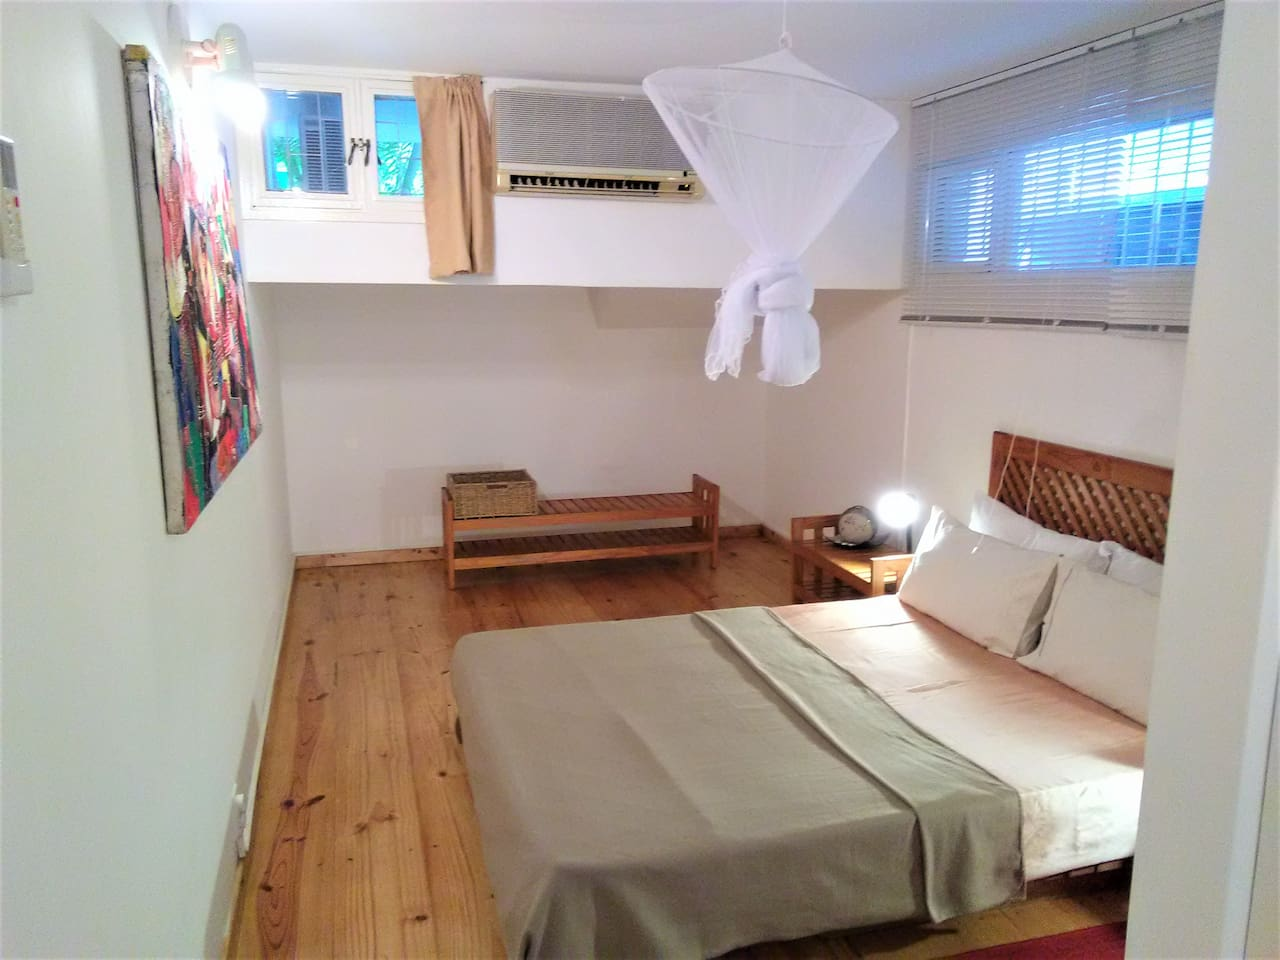 Bedroom with a Japanese bed and a good soft mattress, air conditioner and mosquito net